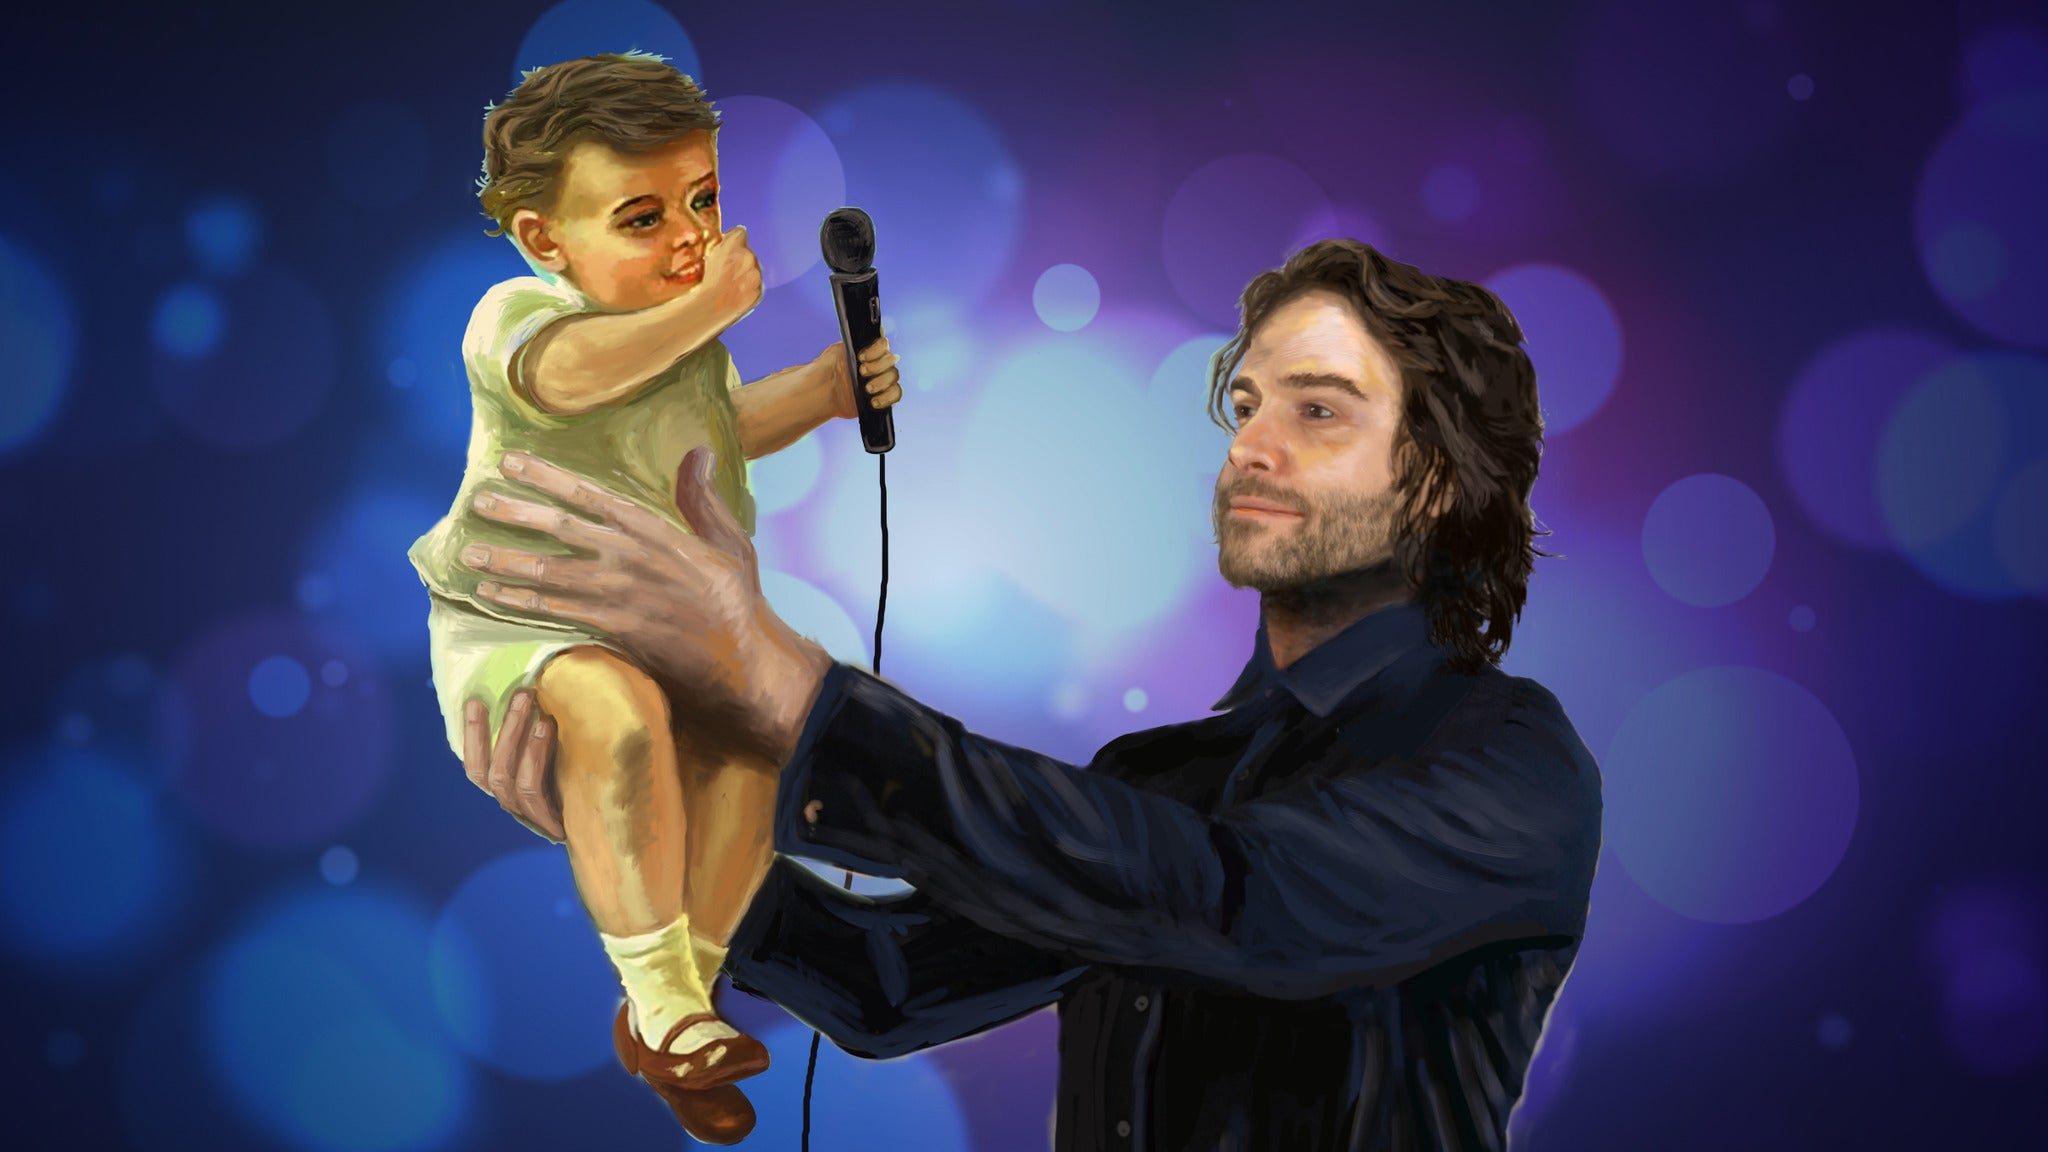 Chris D'elia at Orpheum Theatre - Wichita KS